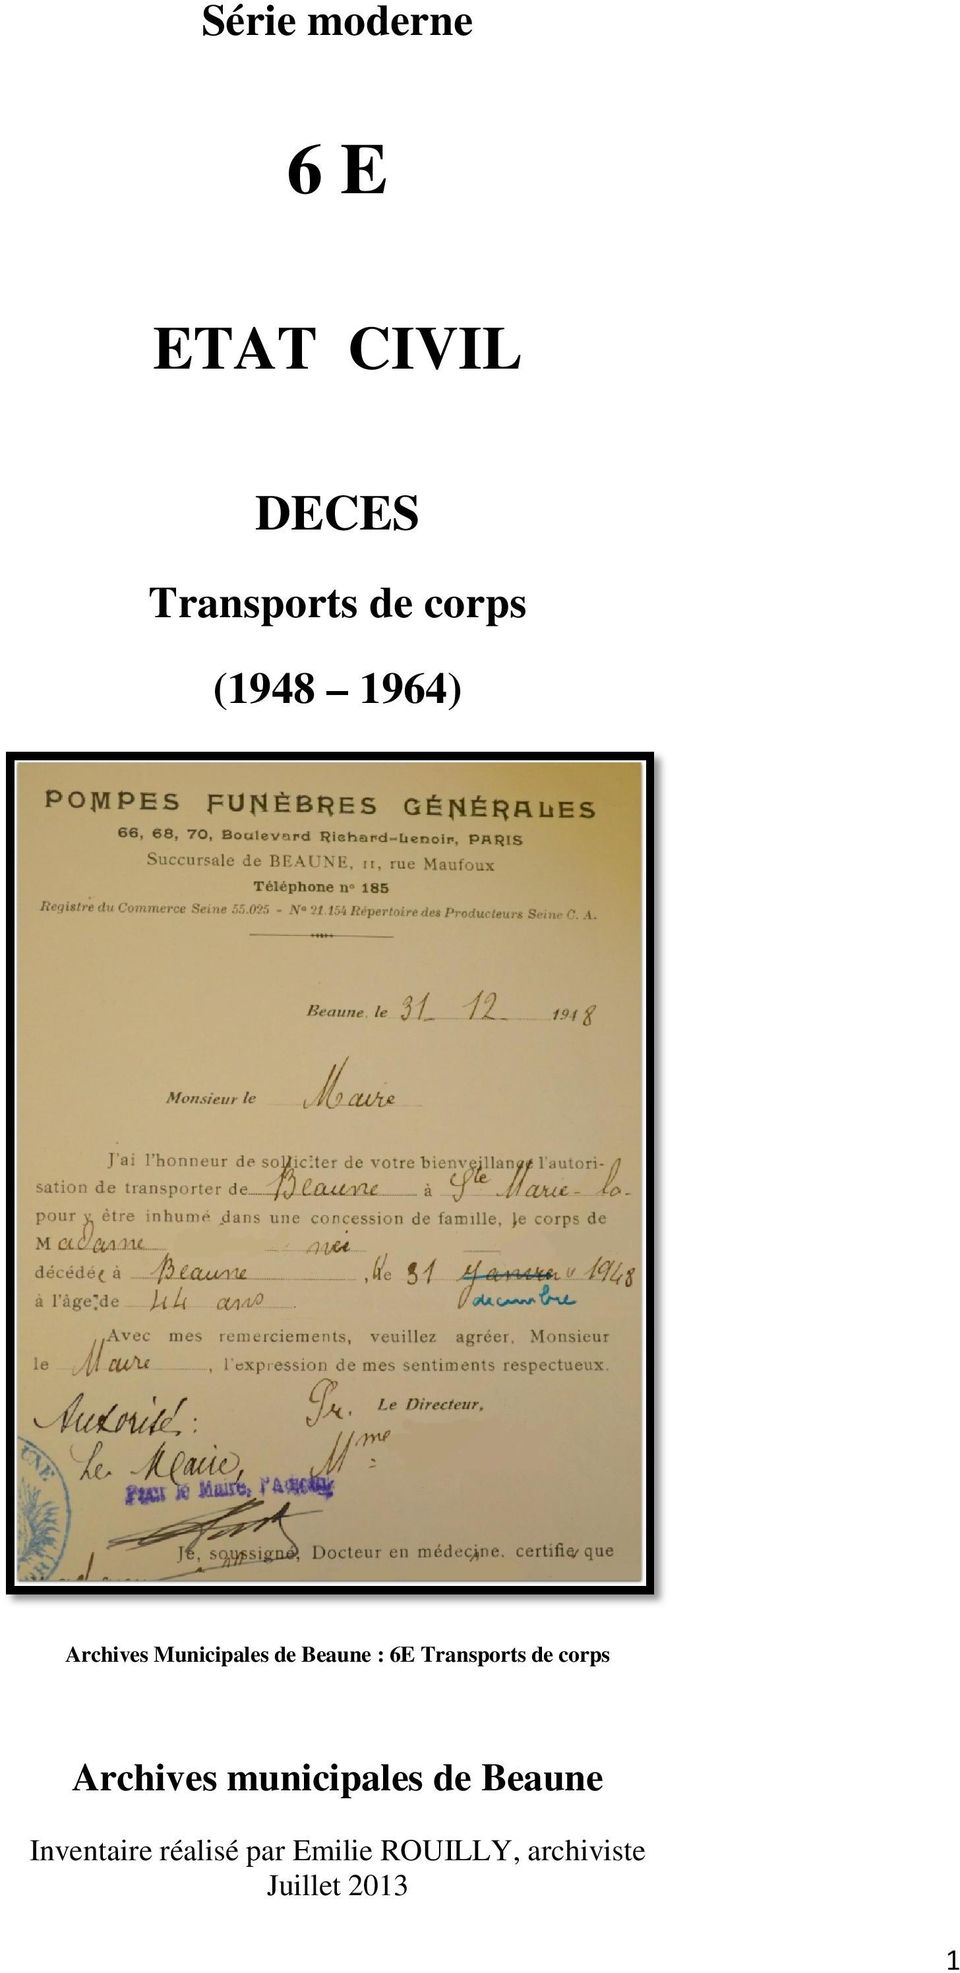 Transports de corps Archives municipales de Beaune